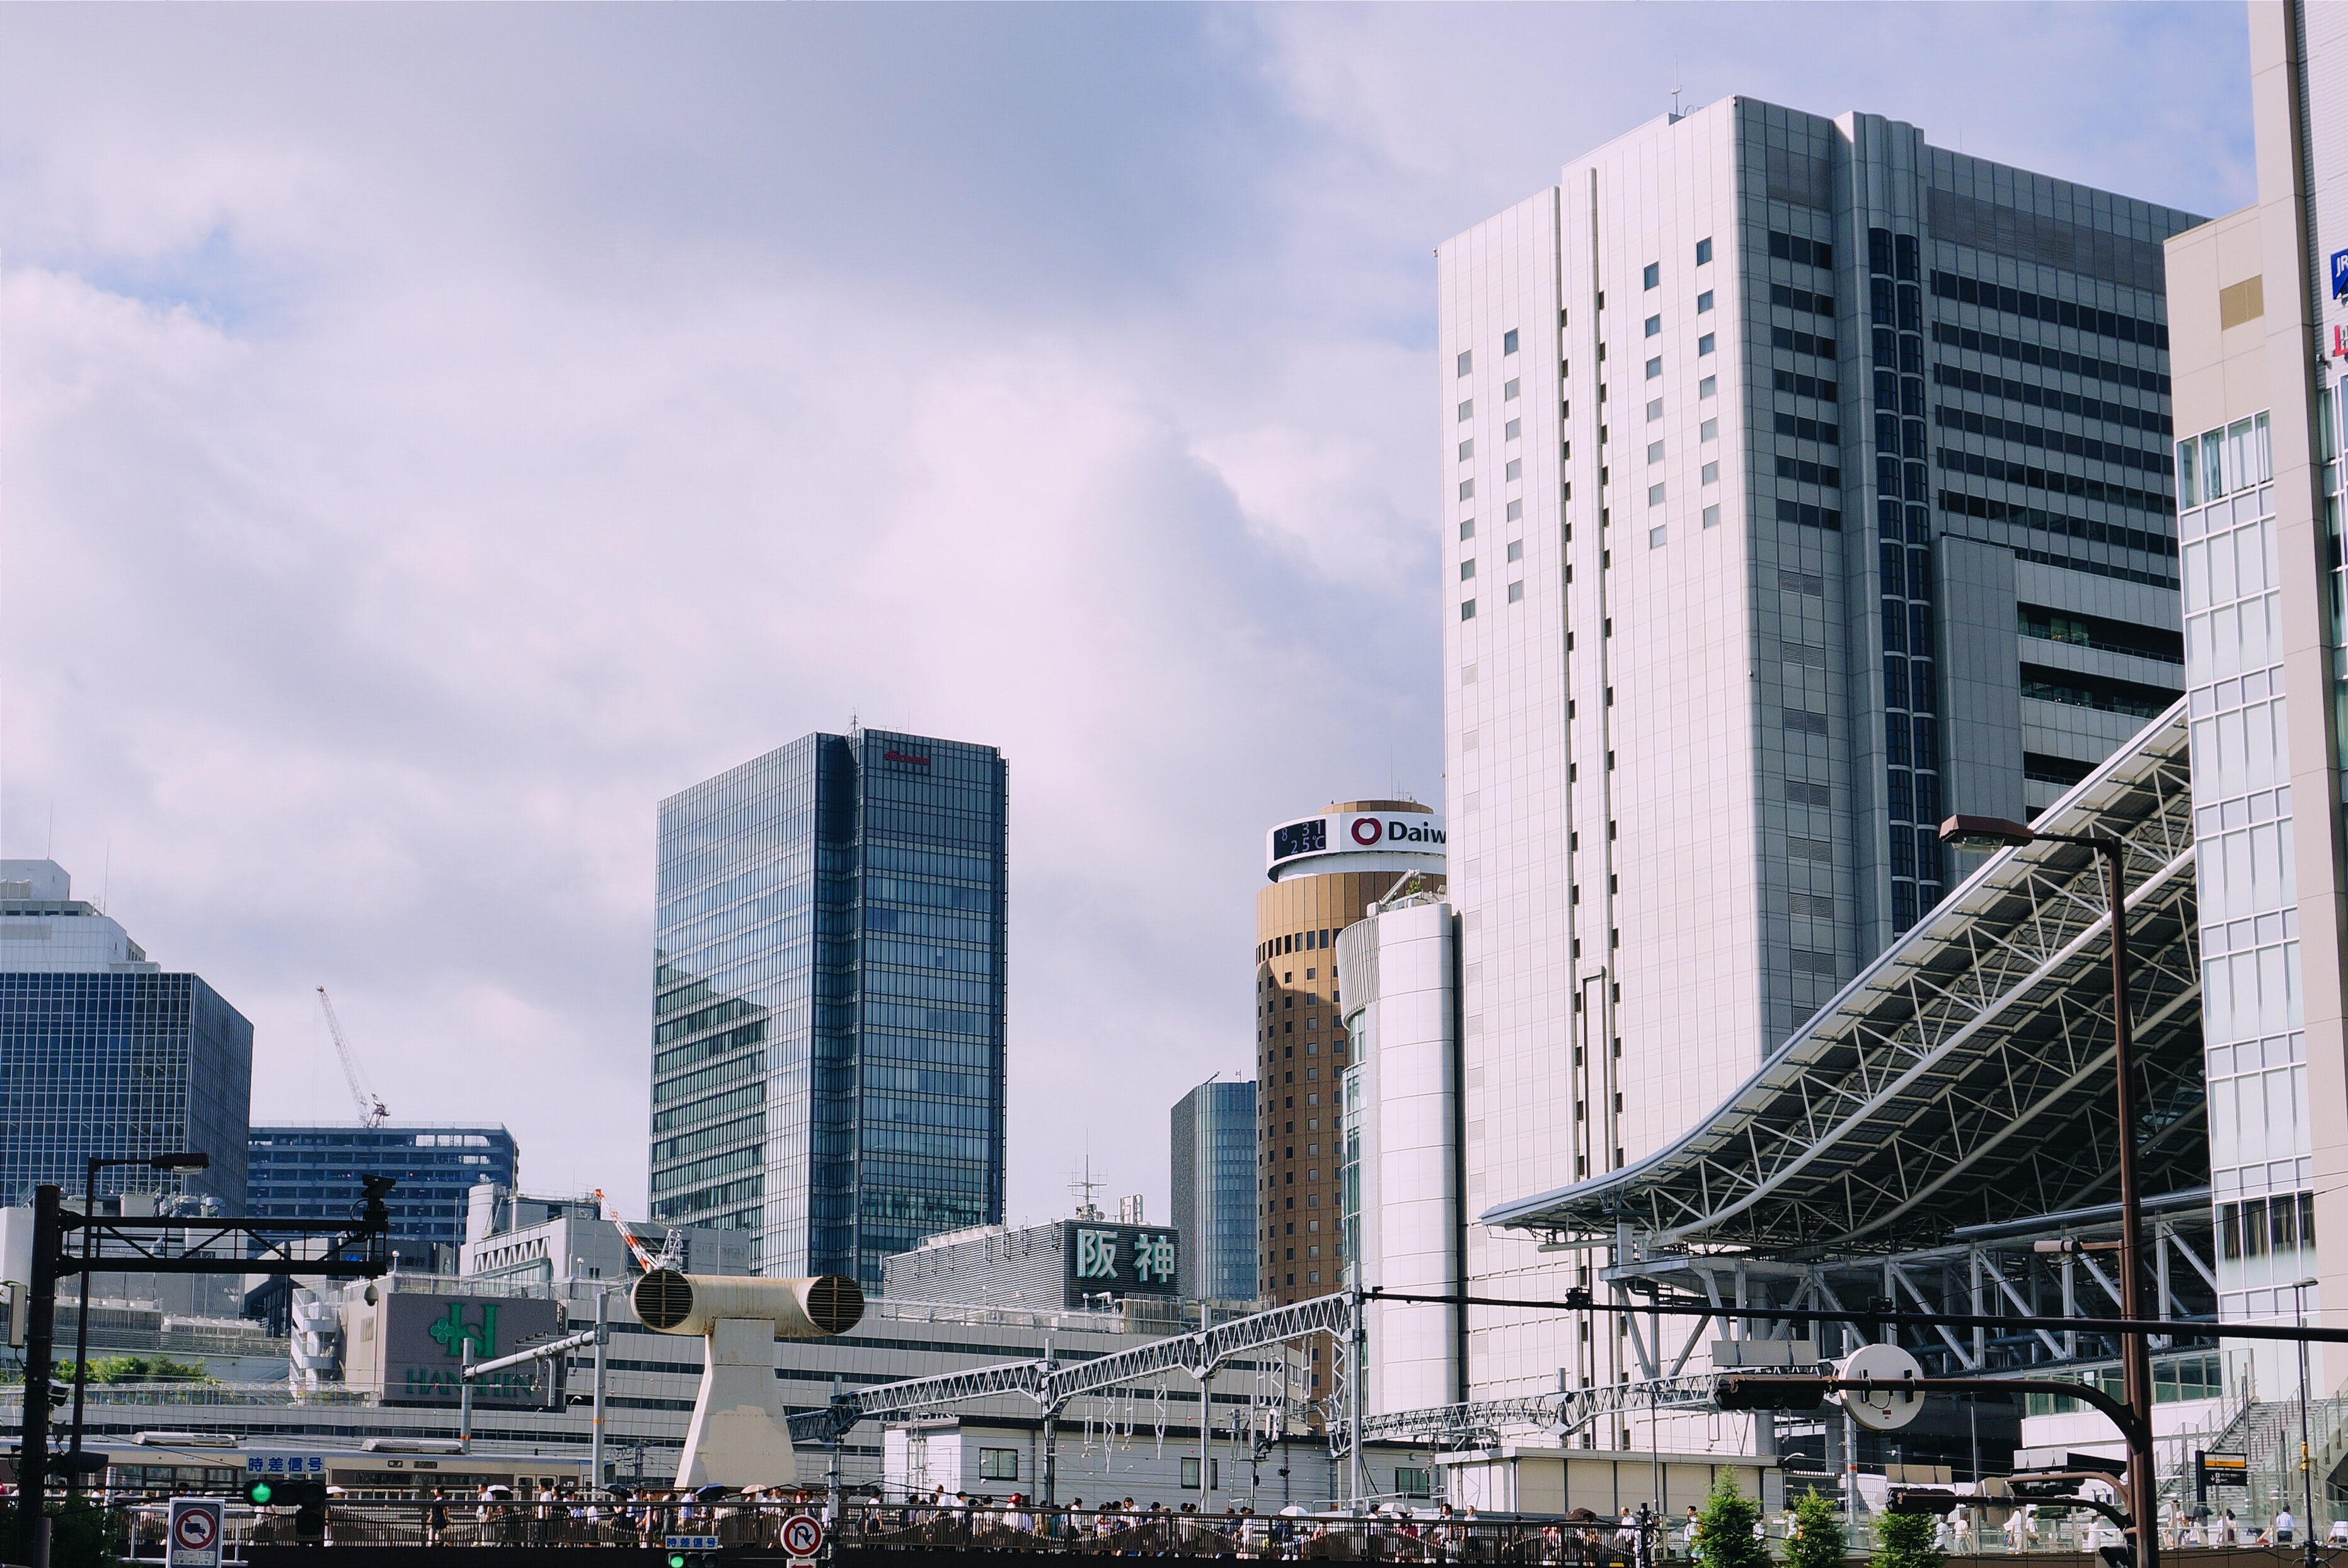 photo of buildings during daytime